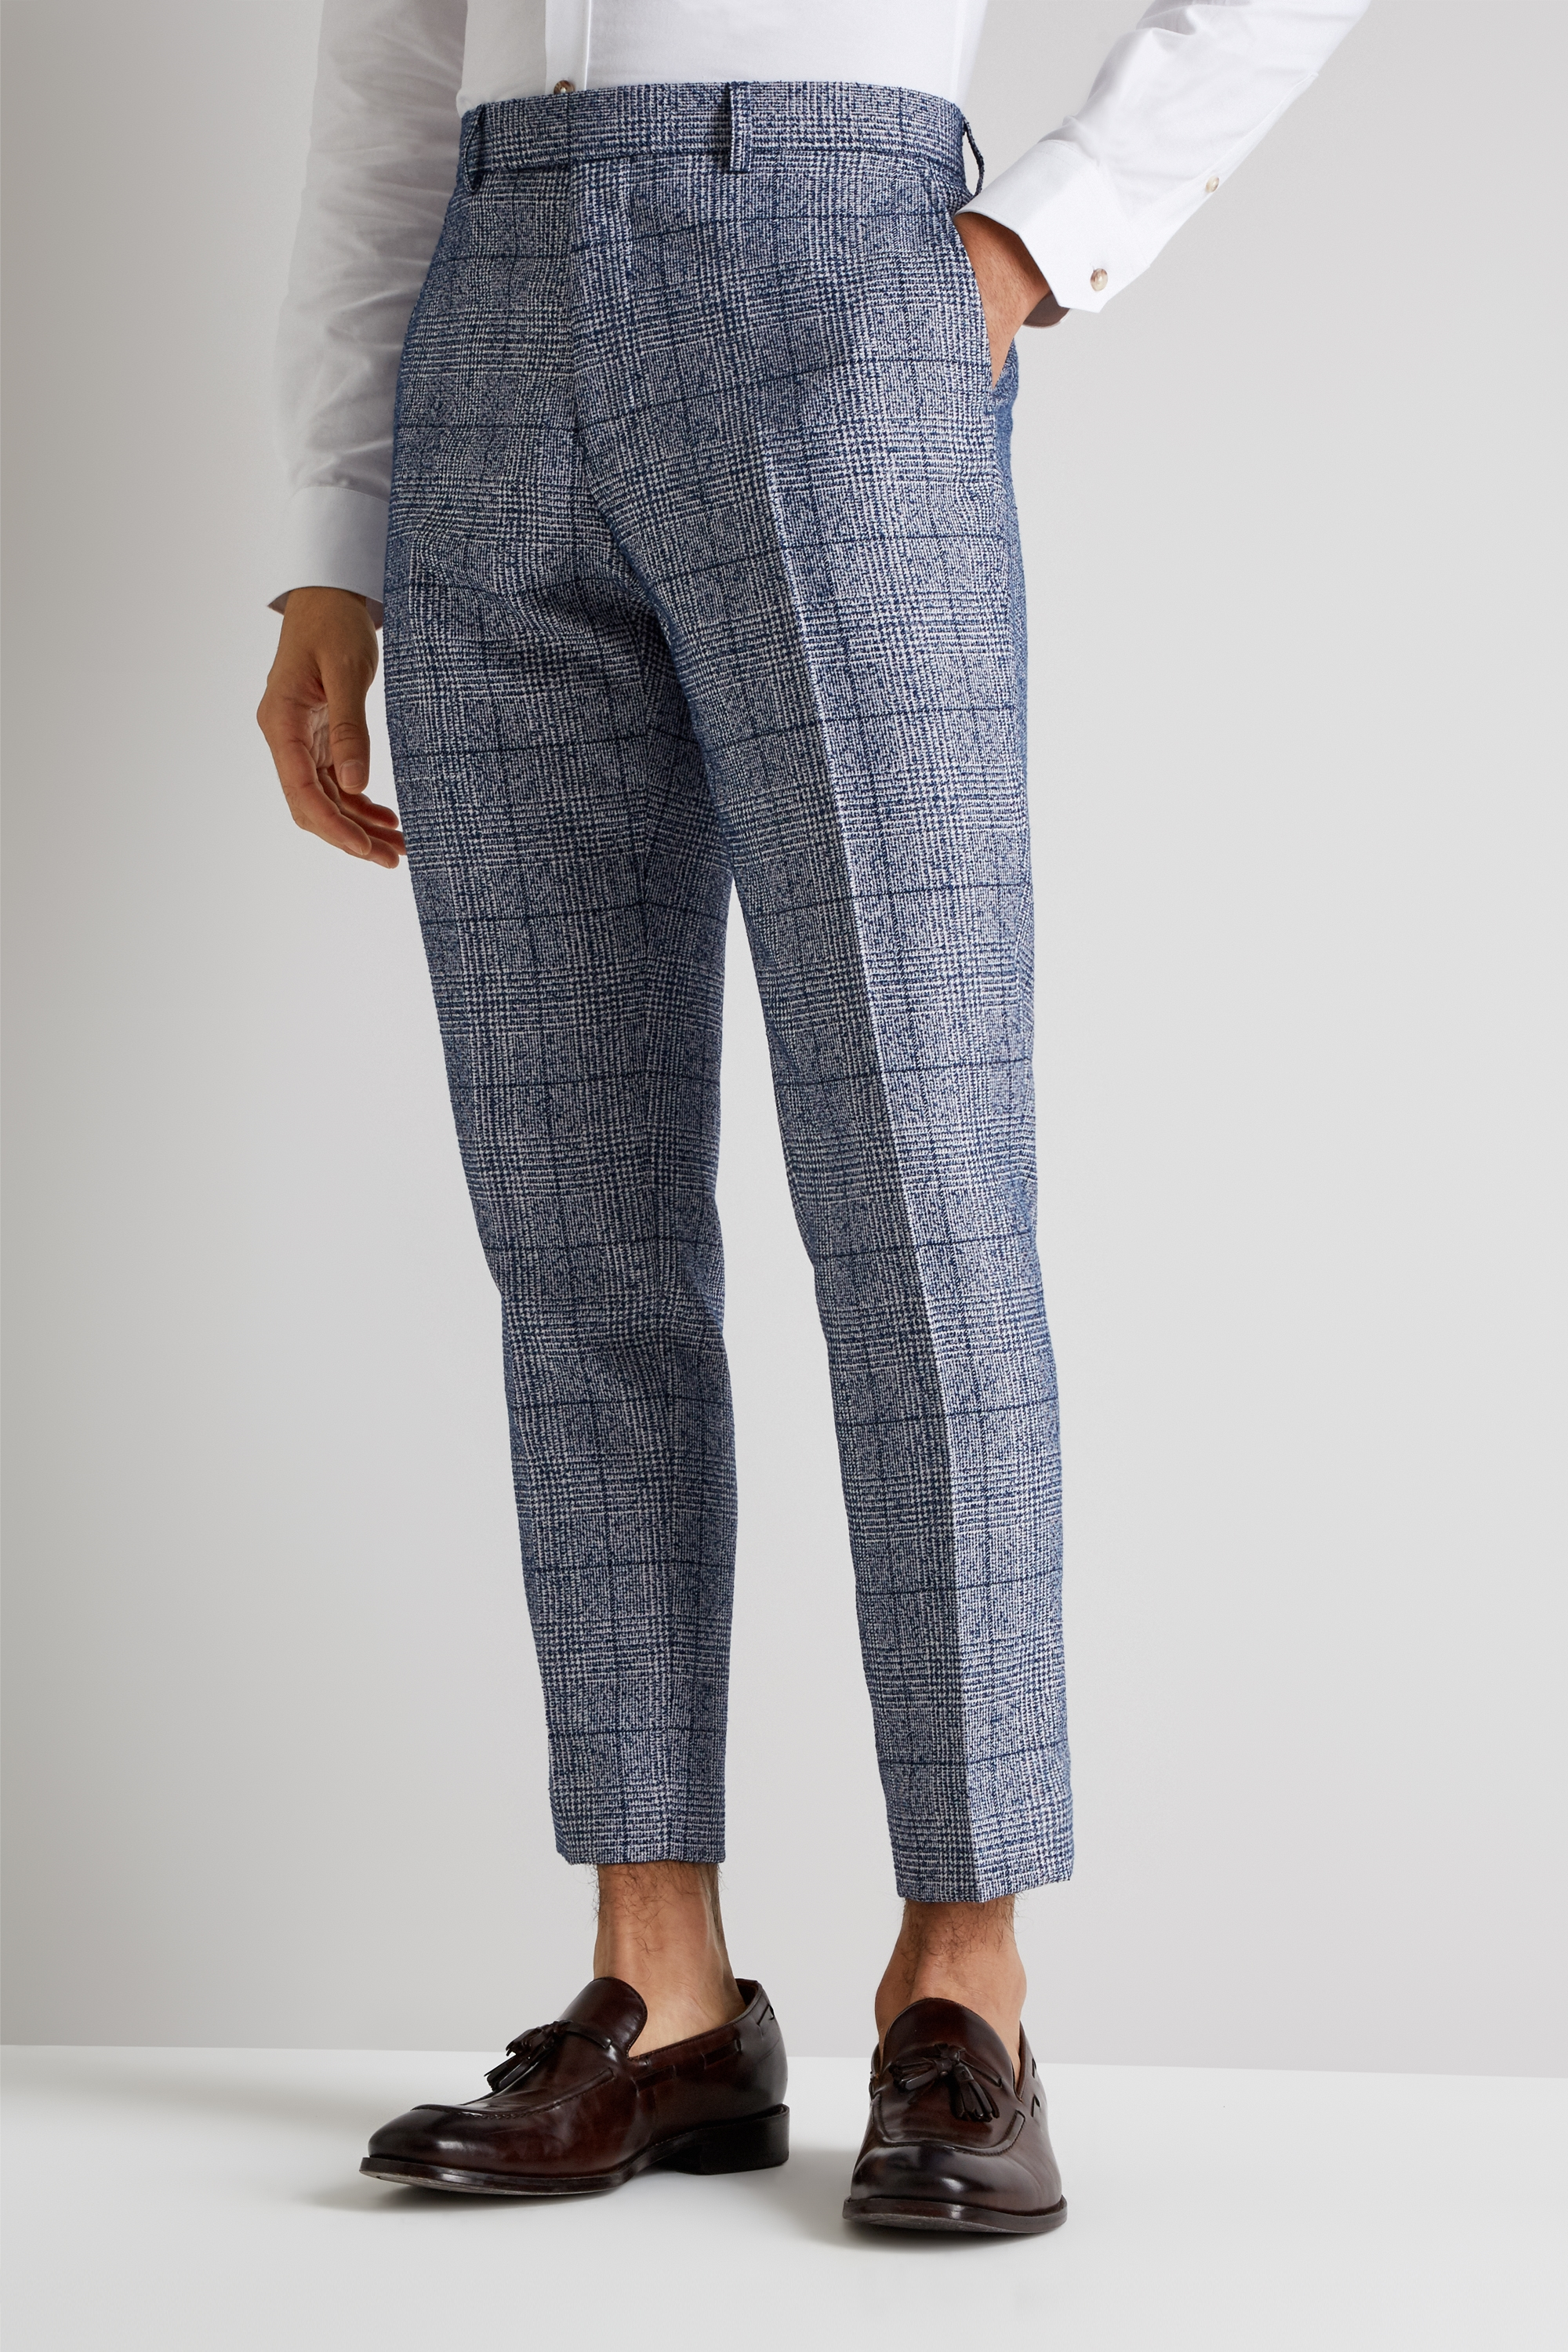 Moss London Mens Blue Cropped Trousers Windowpane Check Casual Pants